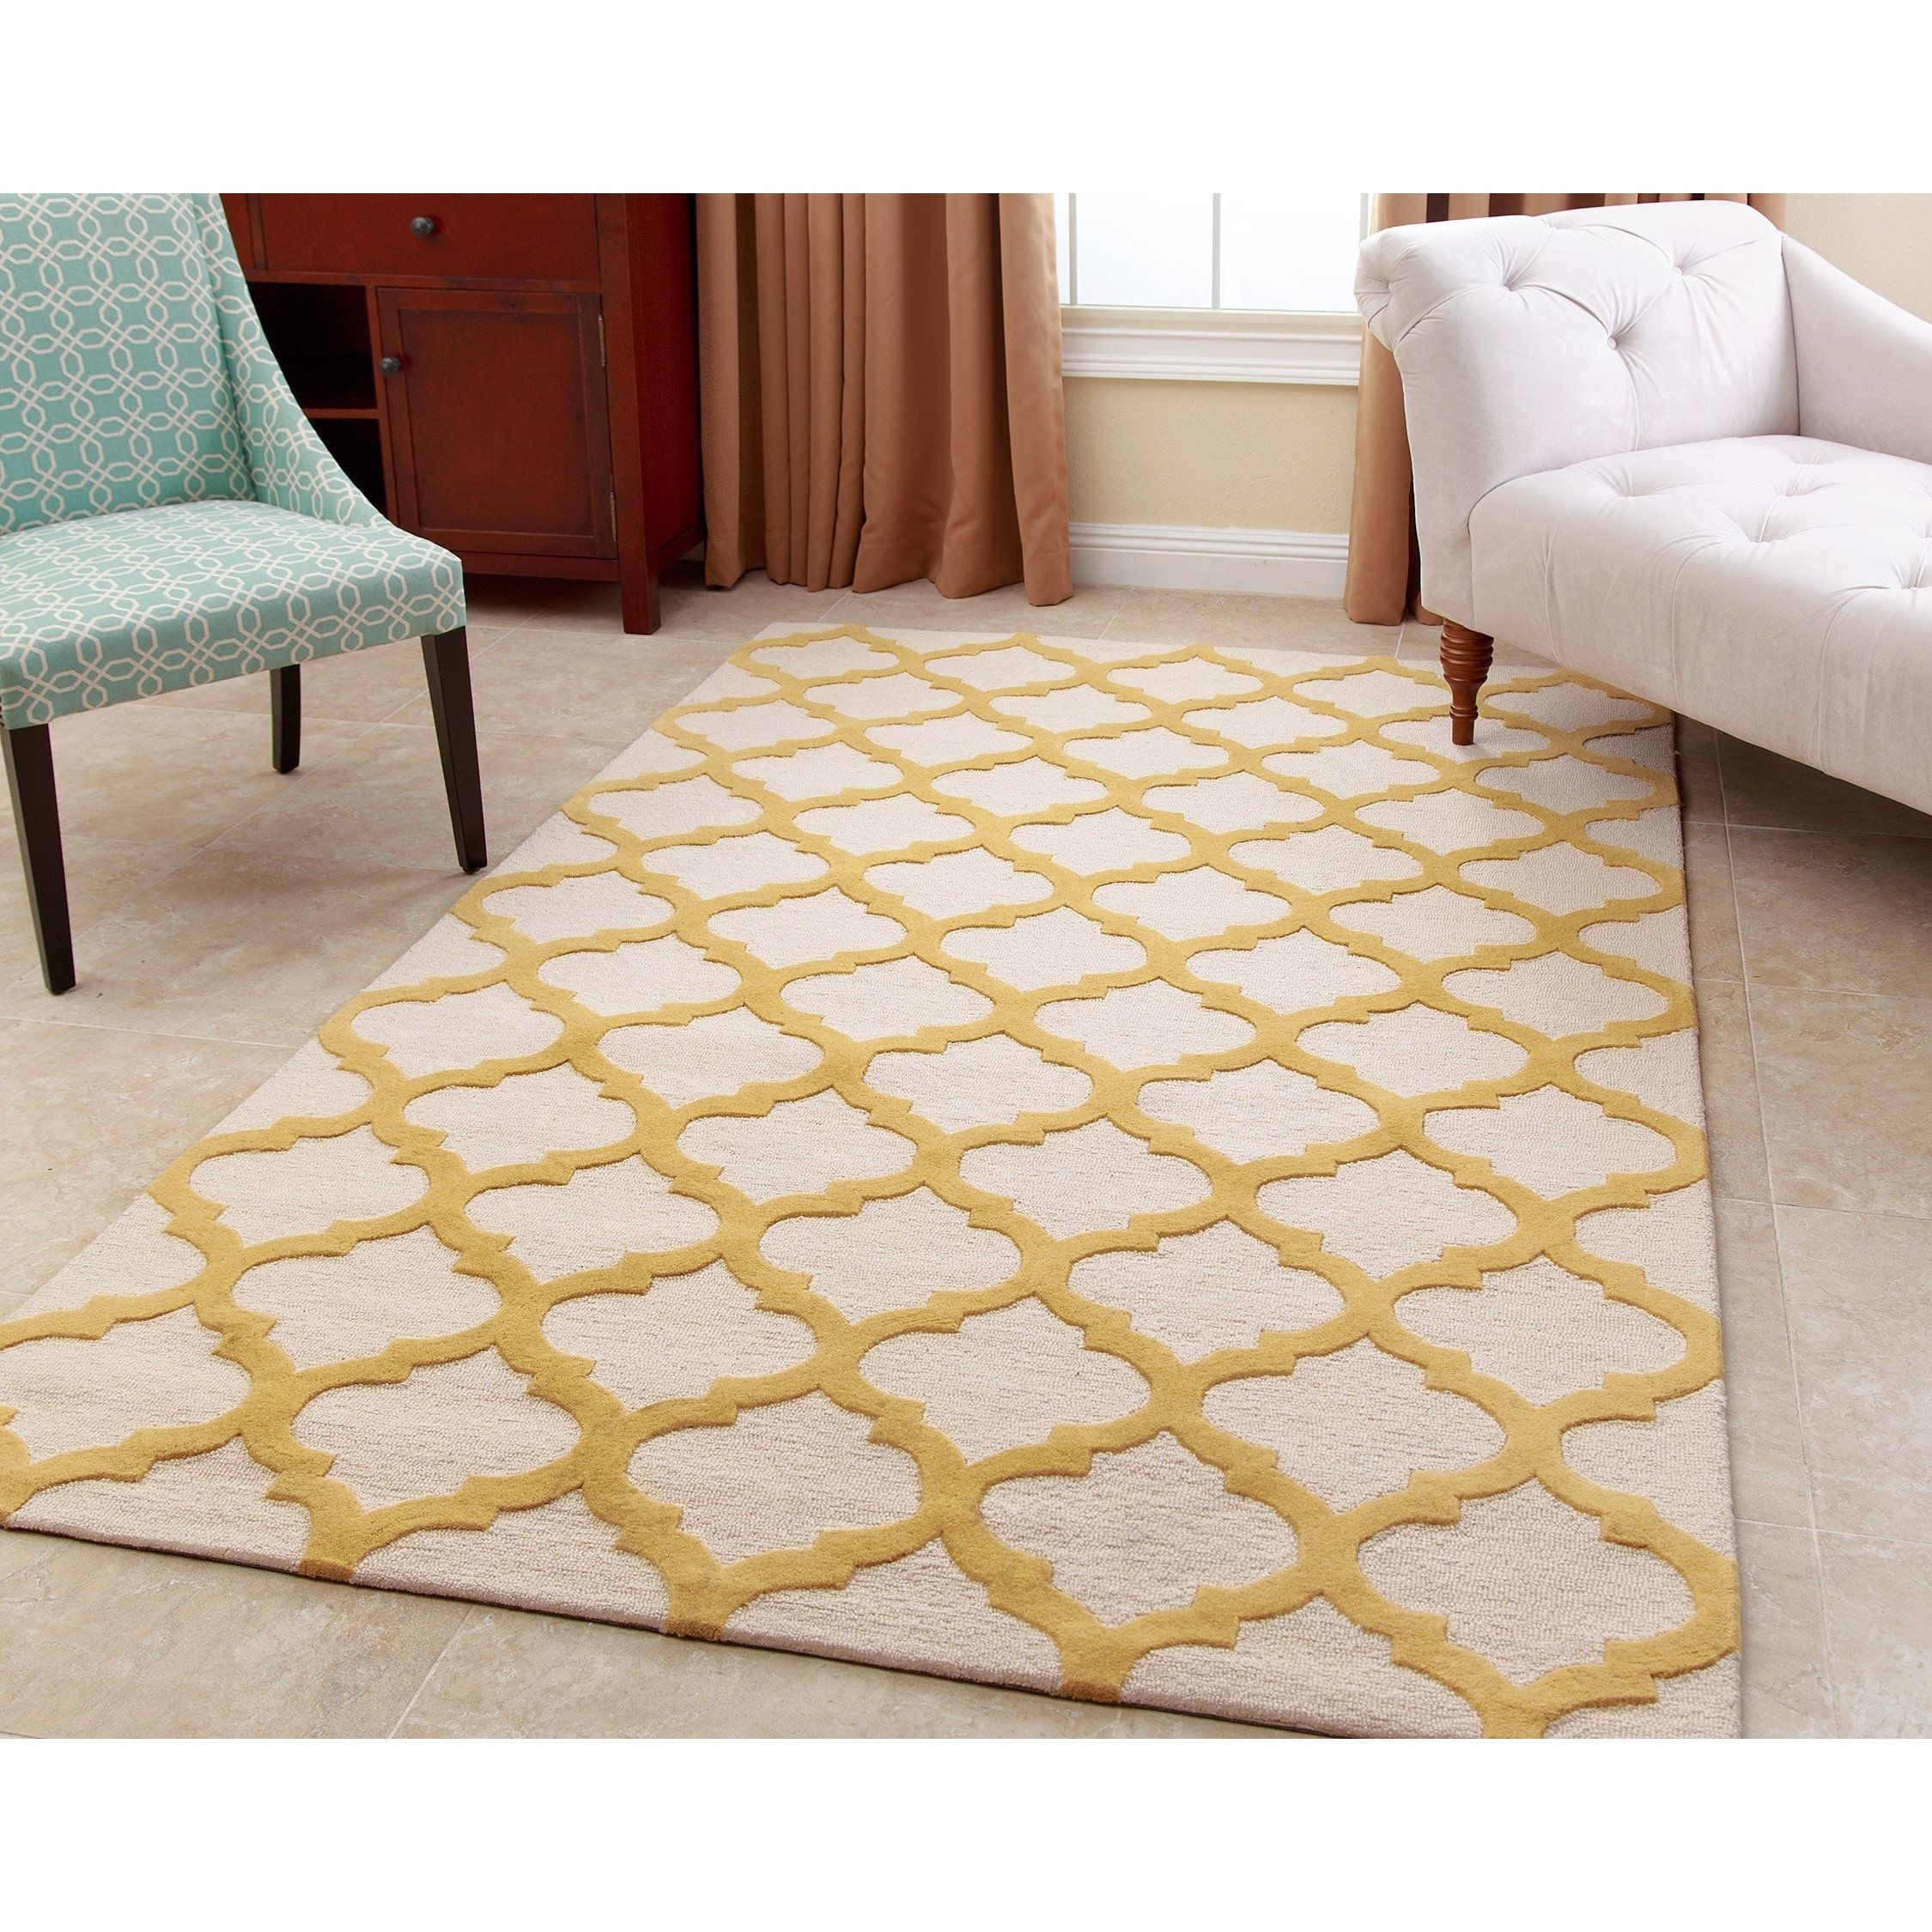 3X5  4X6 Rugs Decorate Your Room With The Perfect